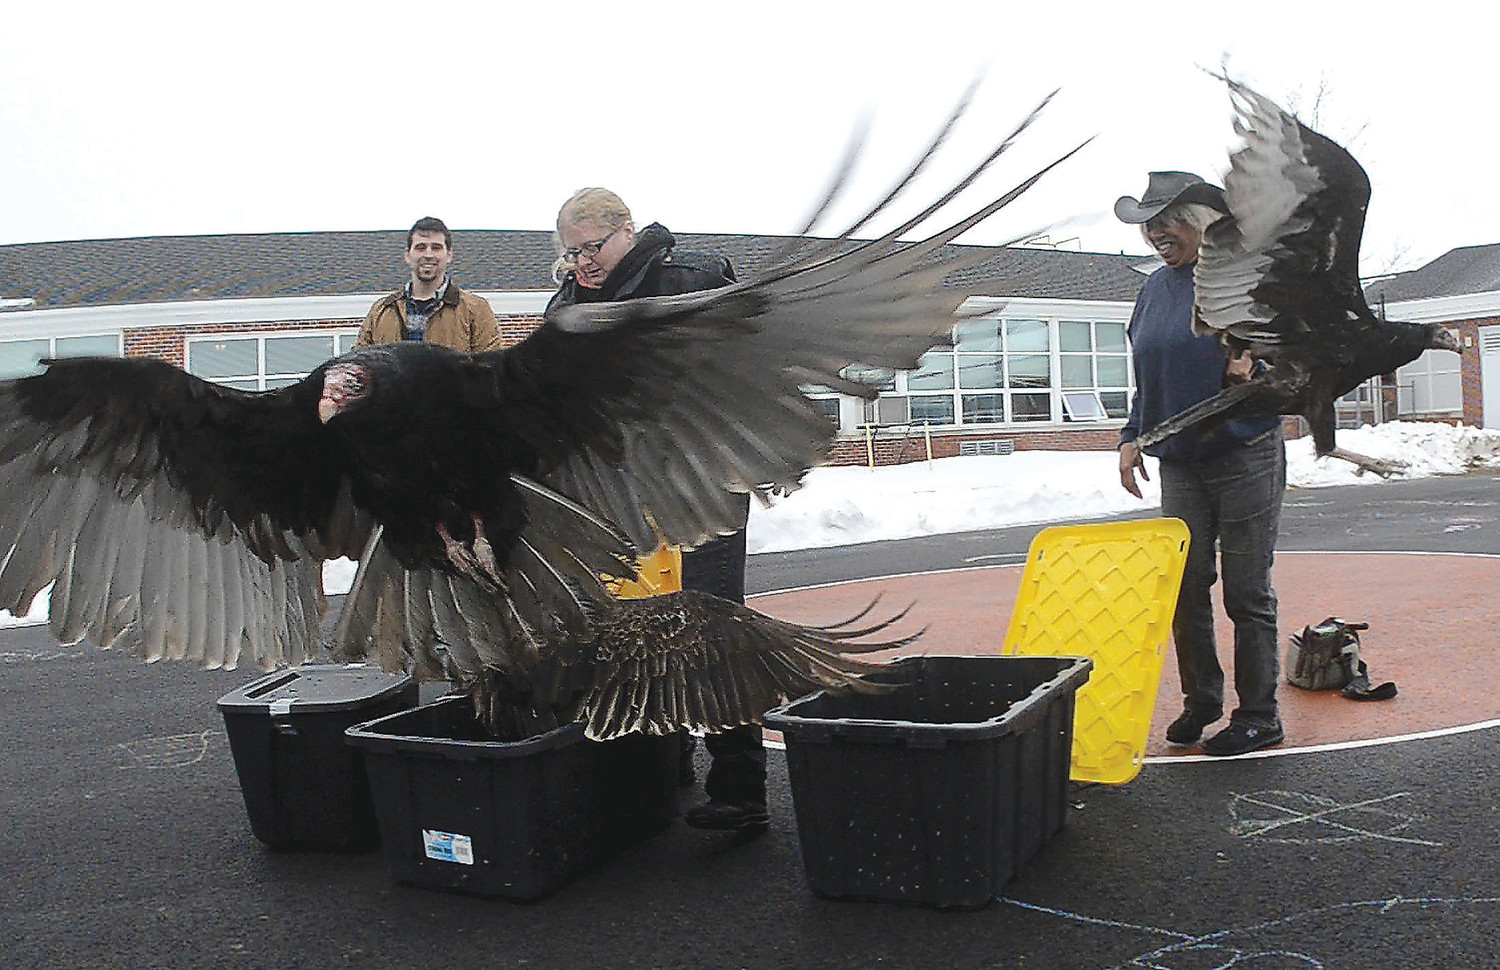 Zak Mertz, director of Cape Wildlife center, Olivia Legrow, of Mass Raptor center, and Marla Isaac, director of Mass Raptor Center, release five turkey vultures while Alice A. Macomber School children look out their windows on Thursday morning.